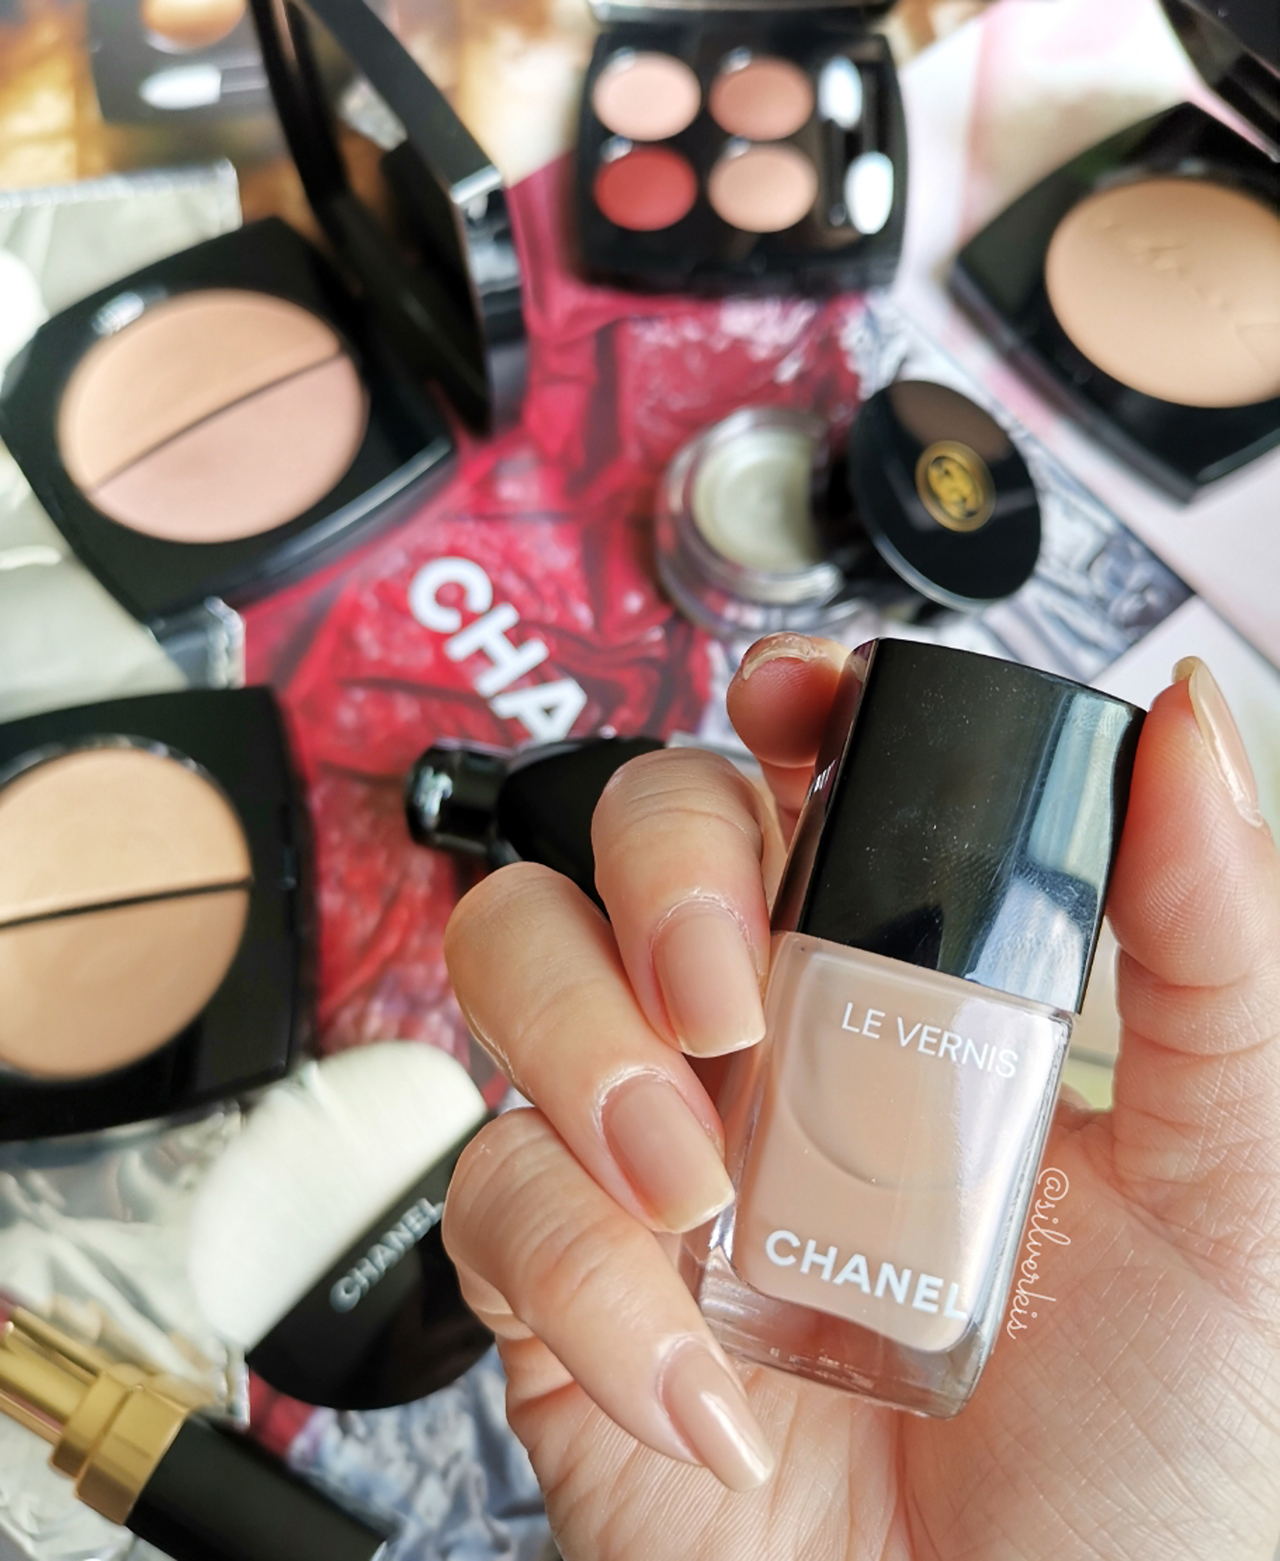 Chanel Le Vernis Afterglow nail swatch